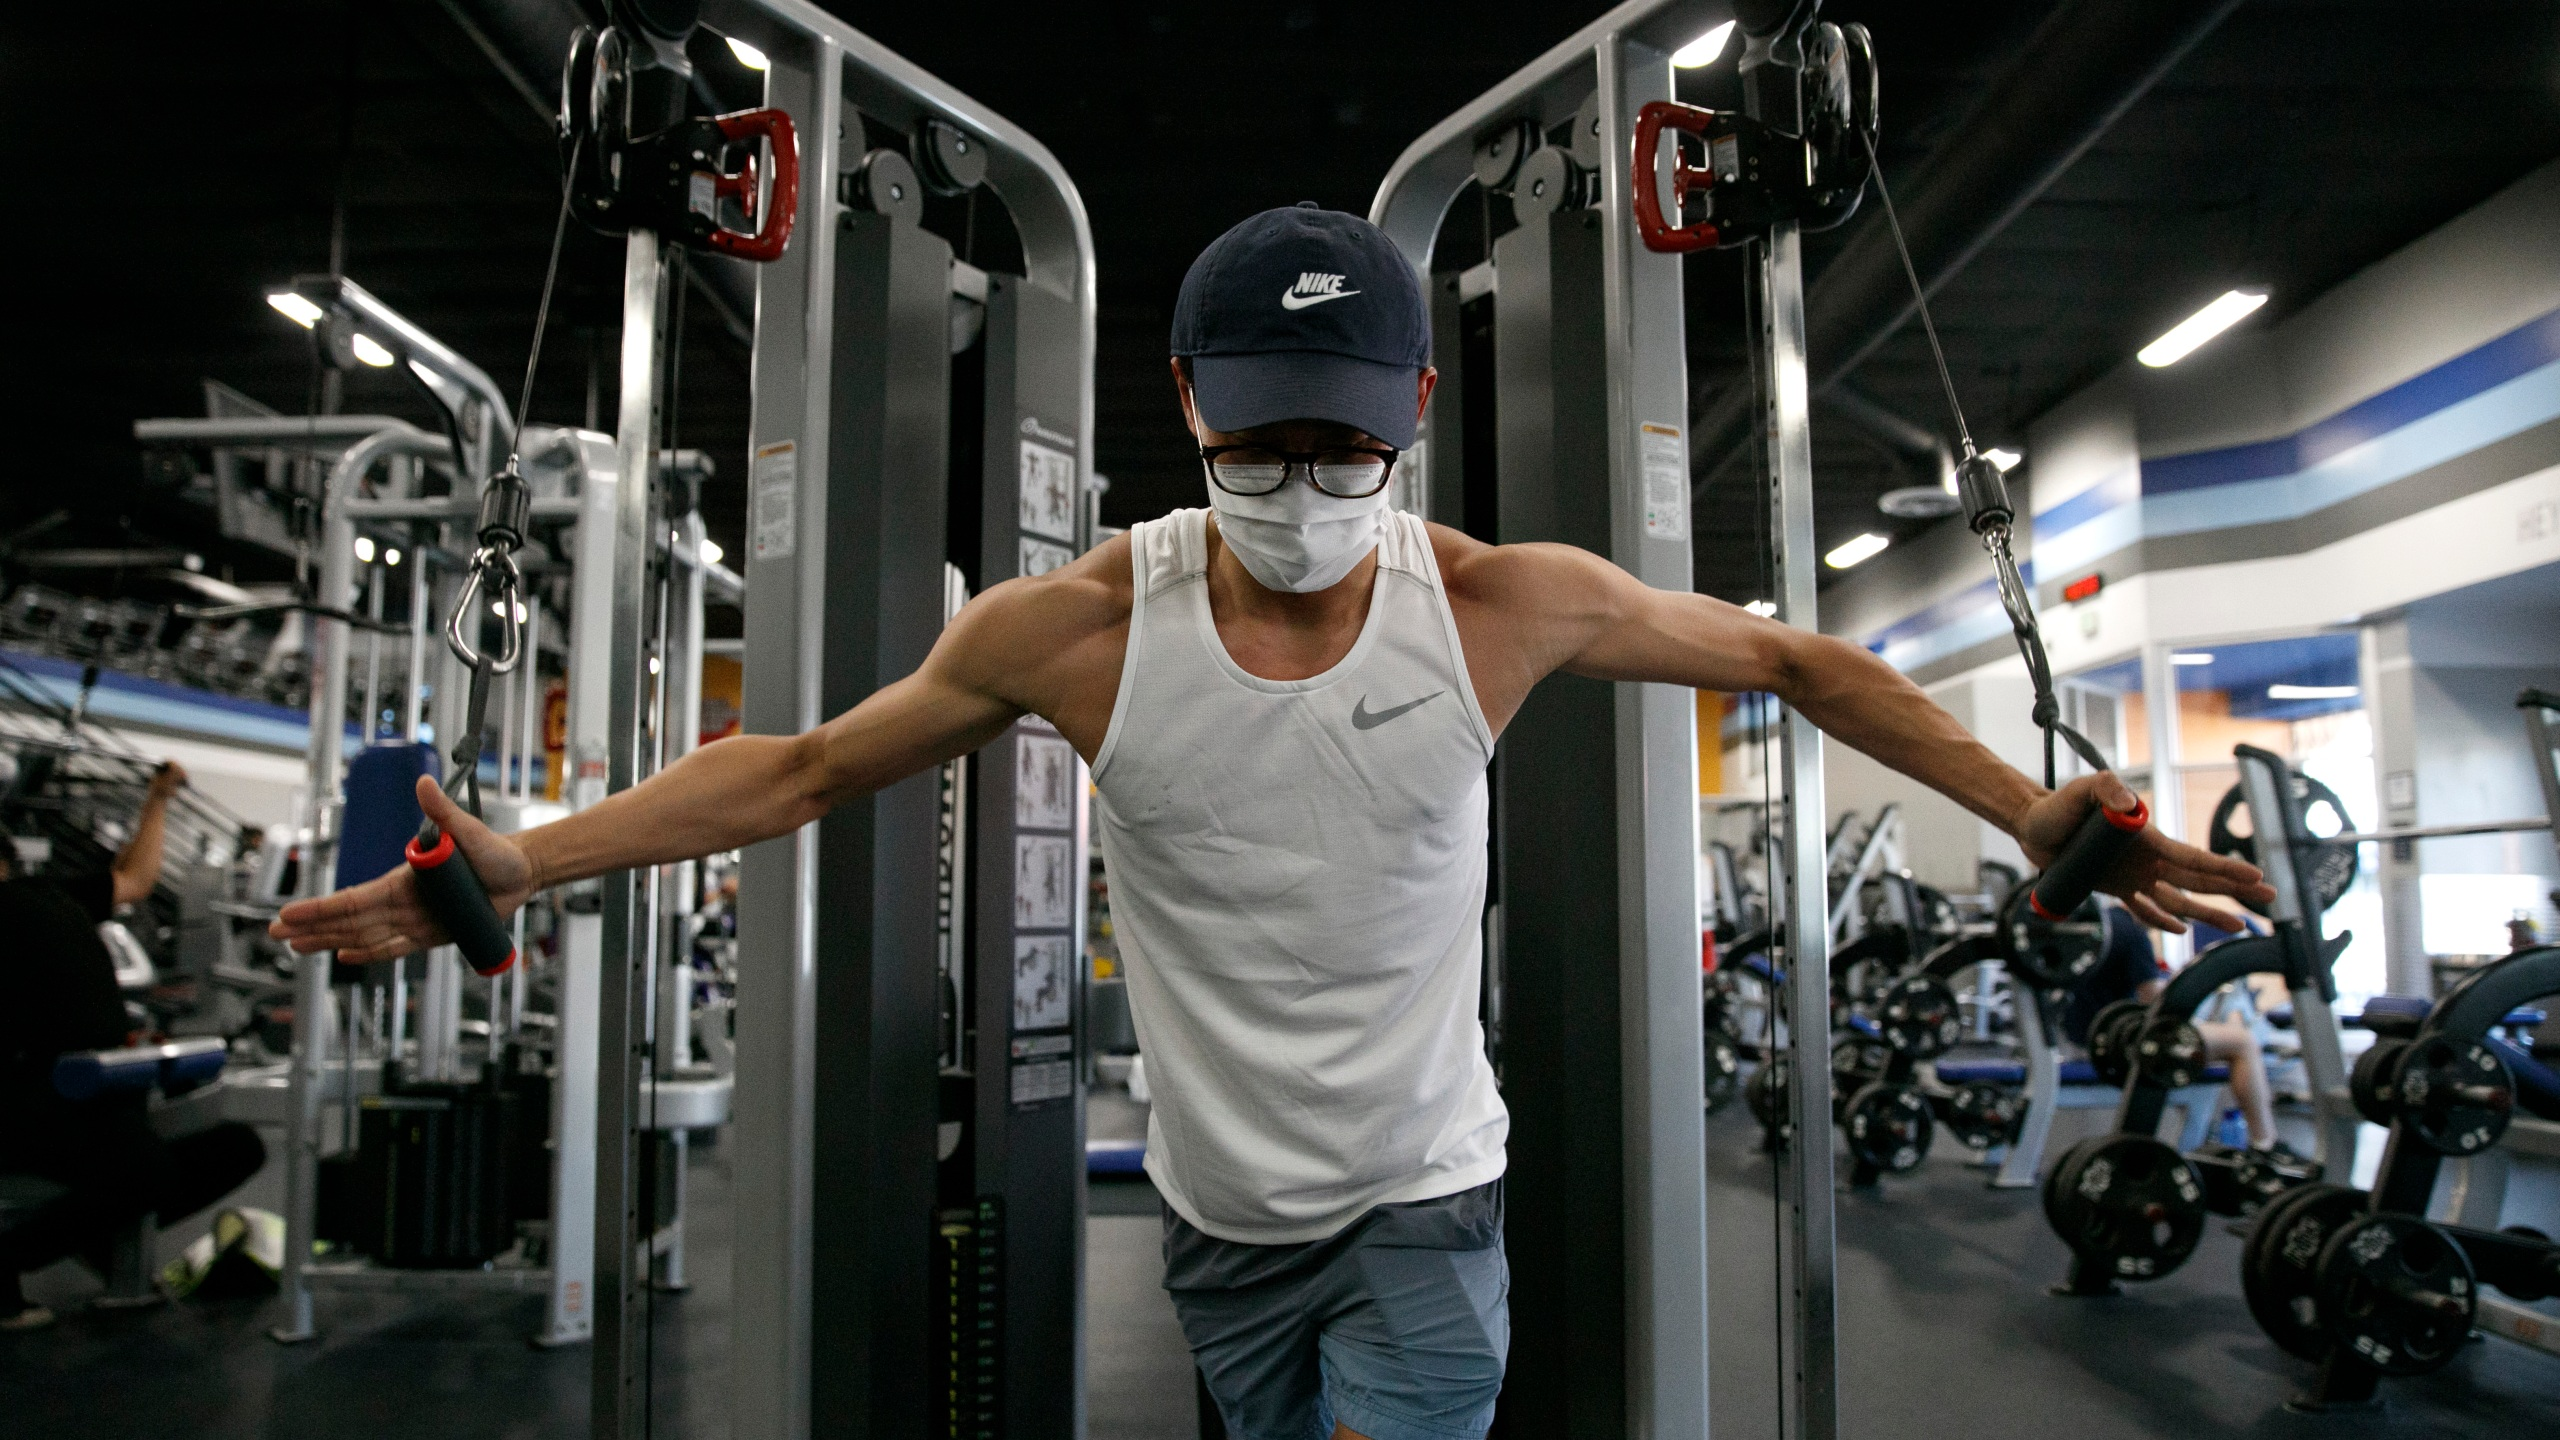 A man wears a mask while working out at a gym in Los Angeles, on June 26, 2020. (AP Photo/Jae C. Hong)